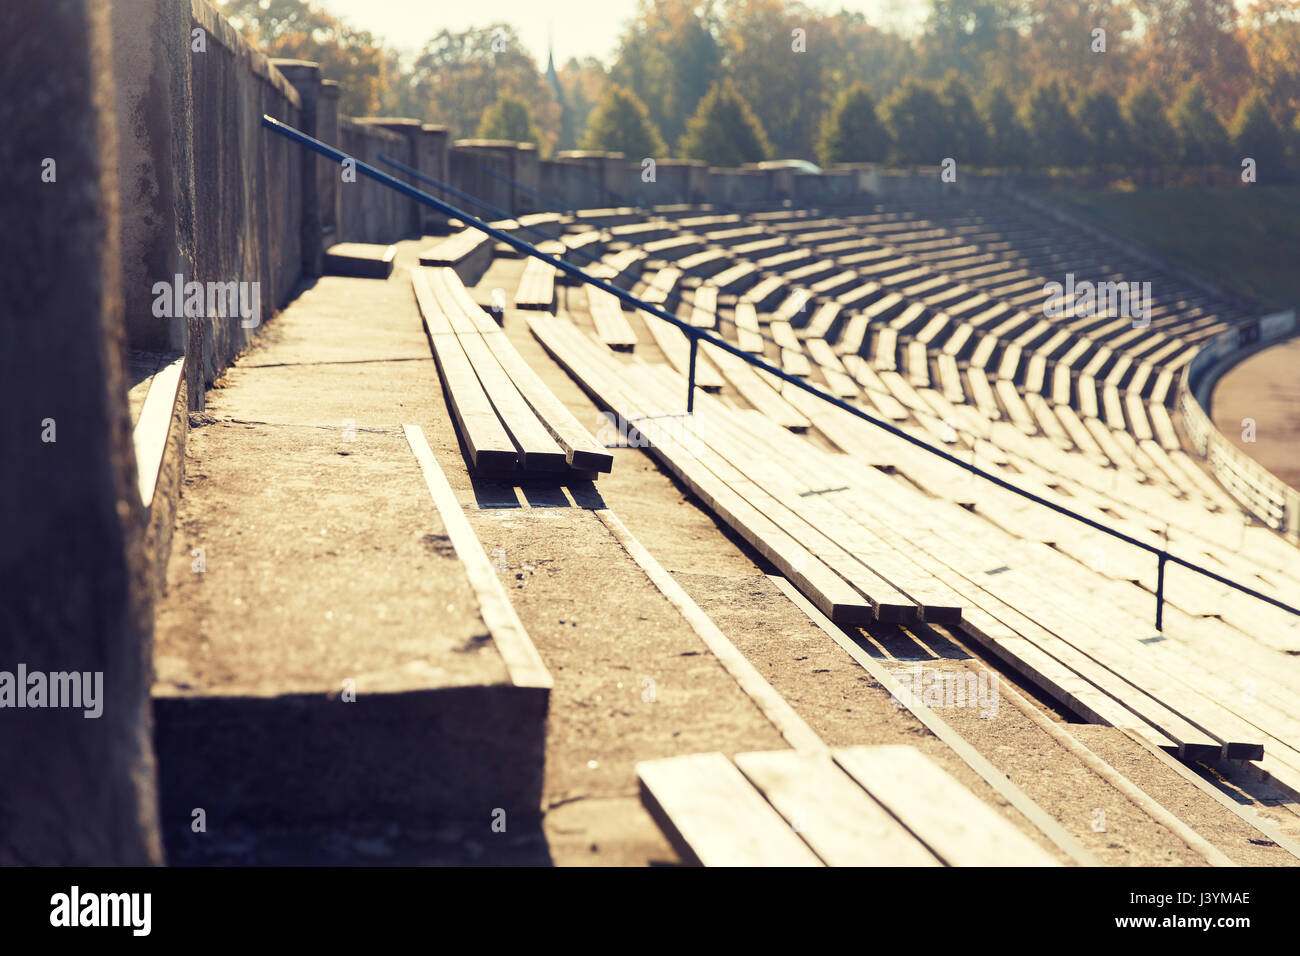 close up of bleachers with benches on stadium - Stock Image